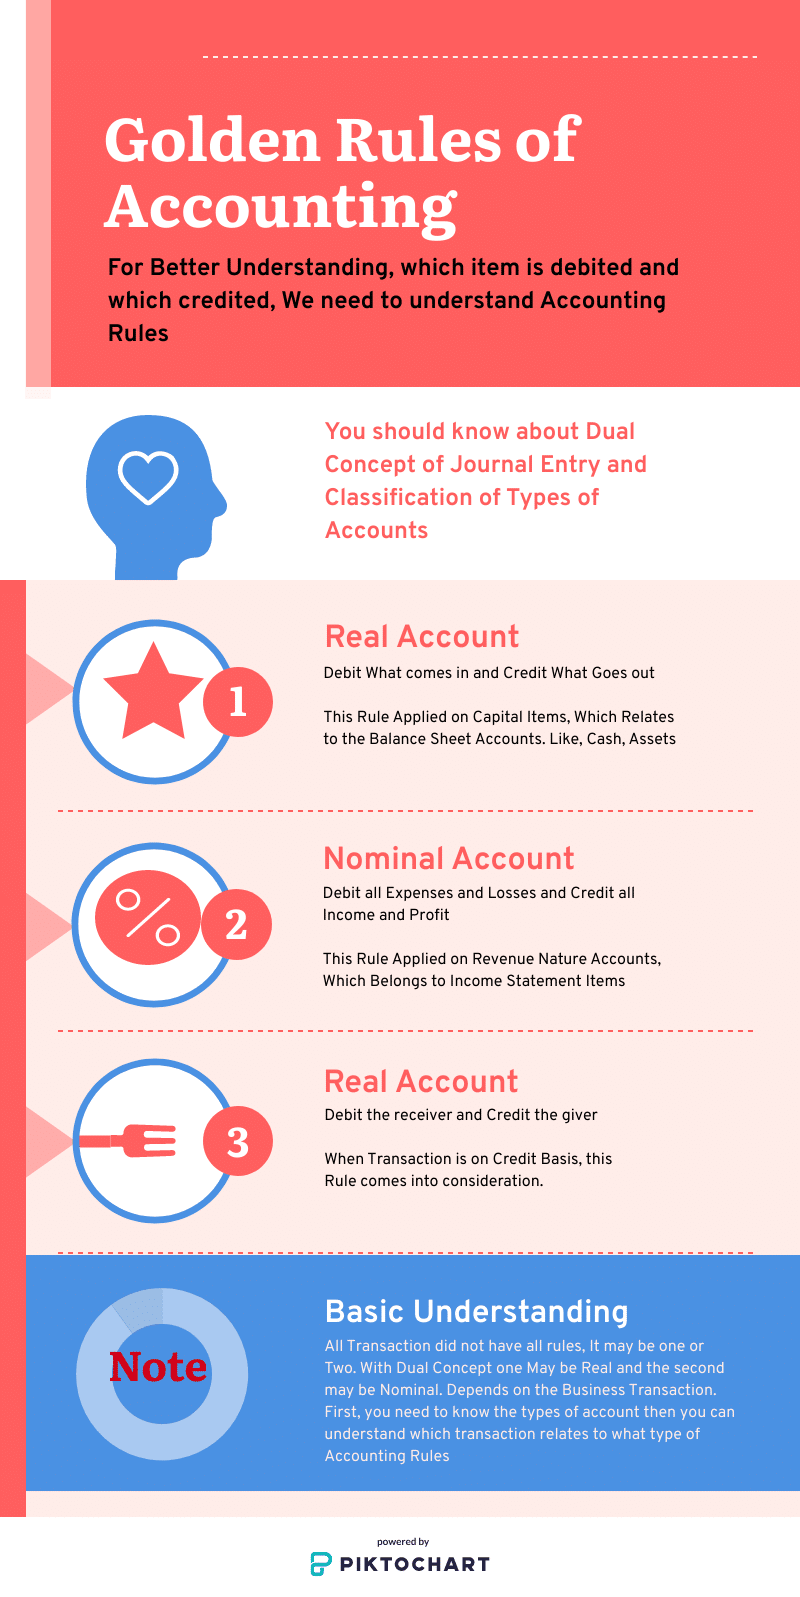 Golden Rules of Accounting Infograph